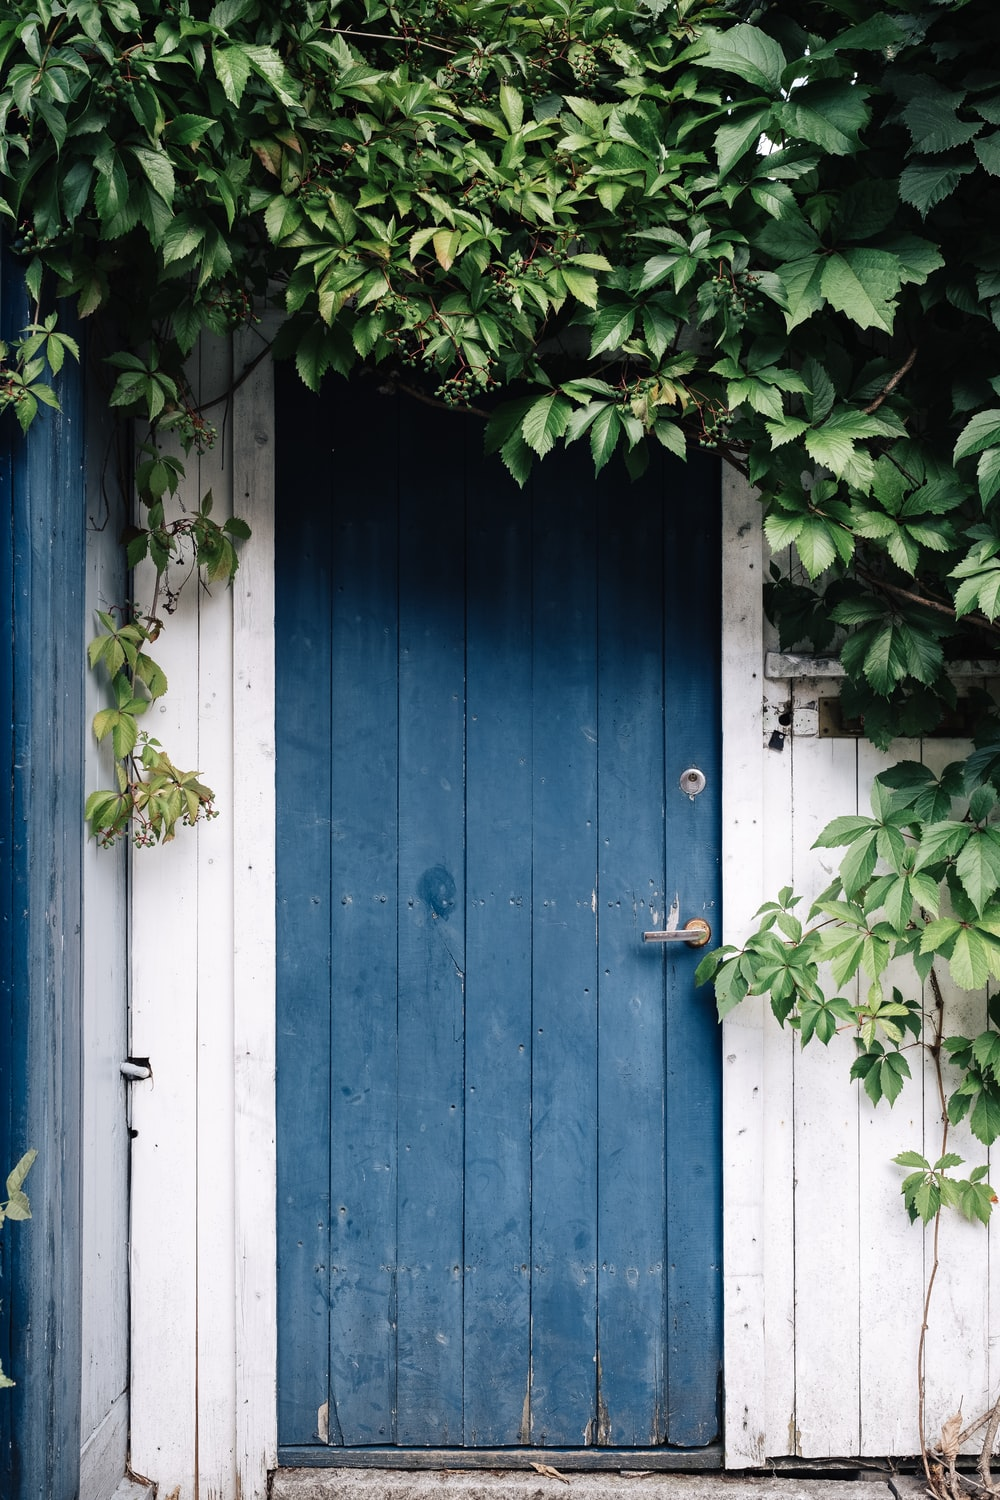 blue wooden door surrounded by green leaves at daytime